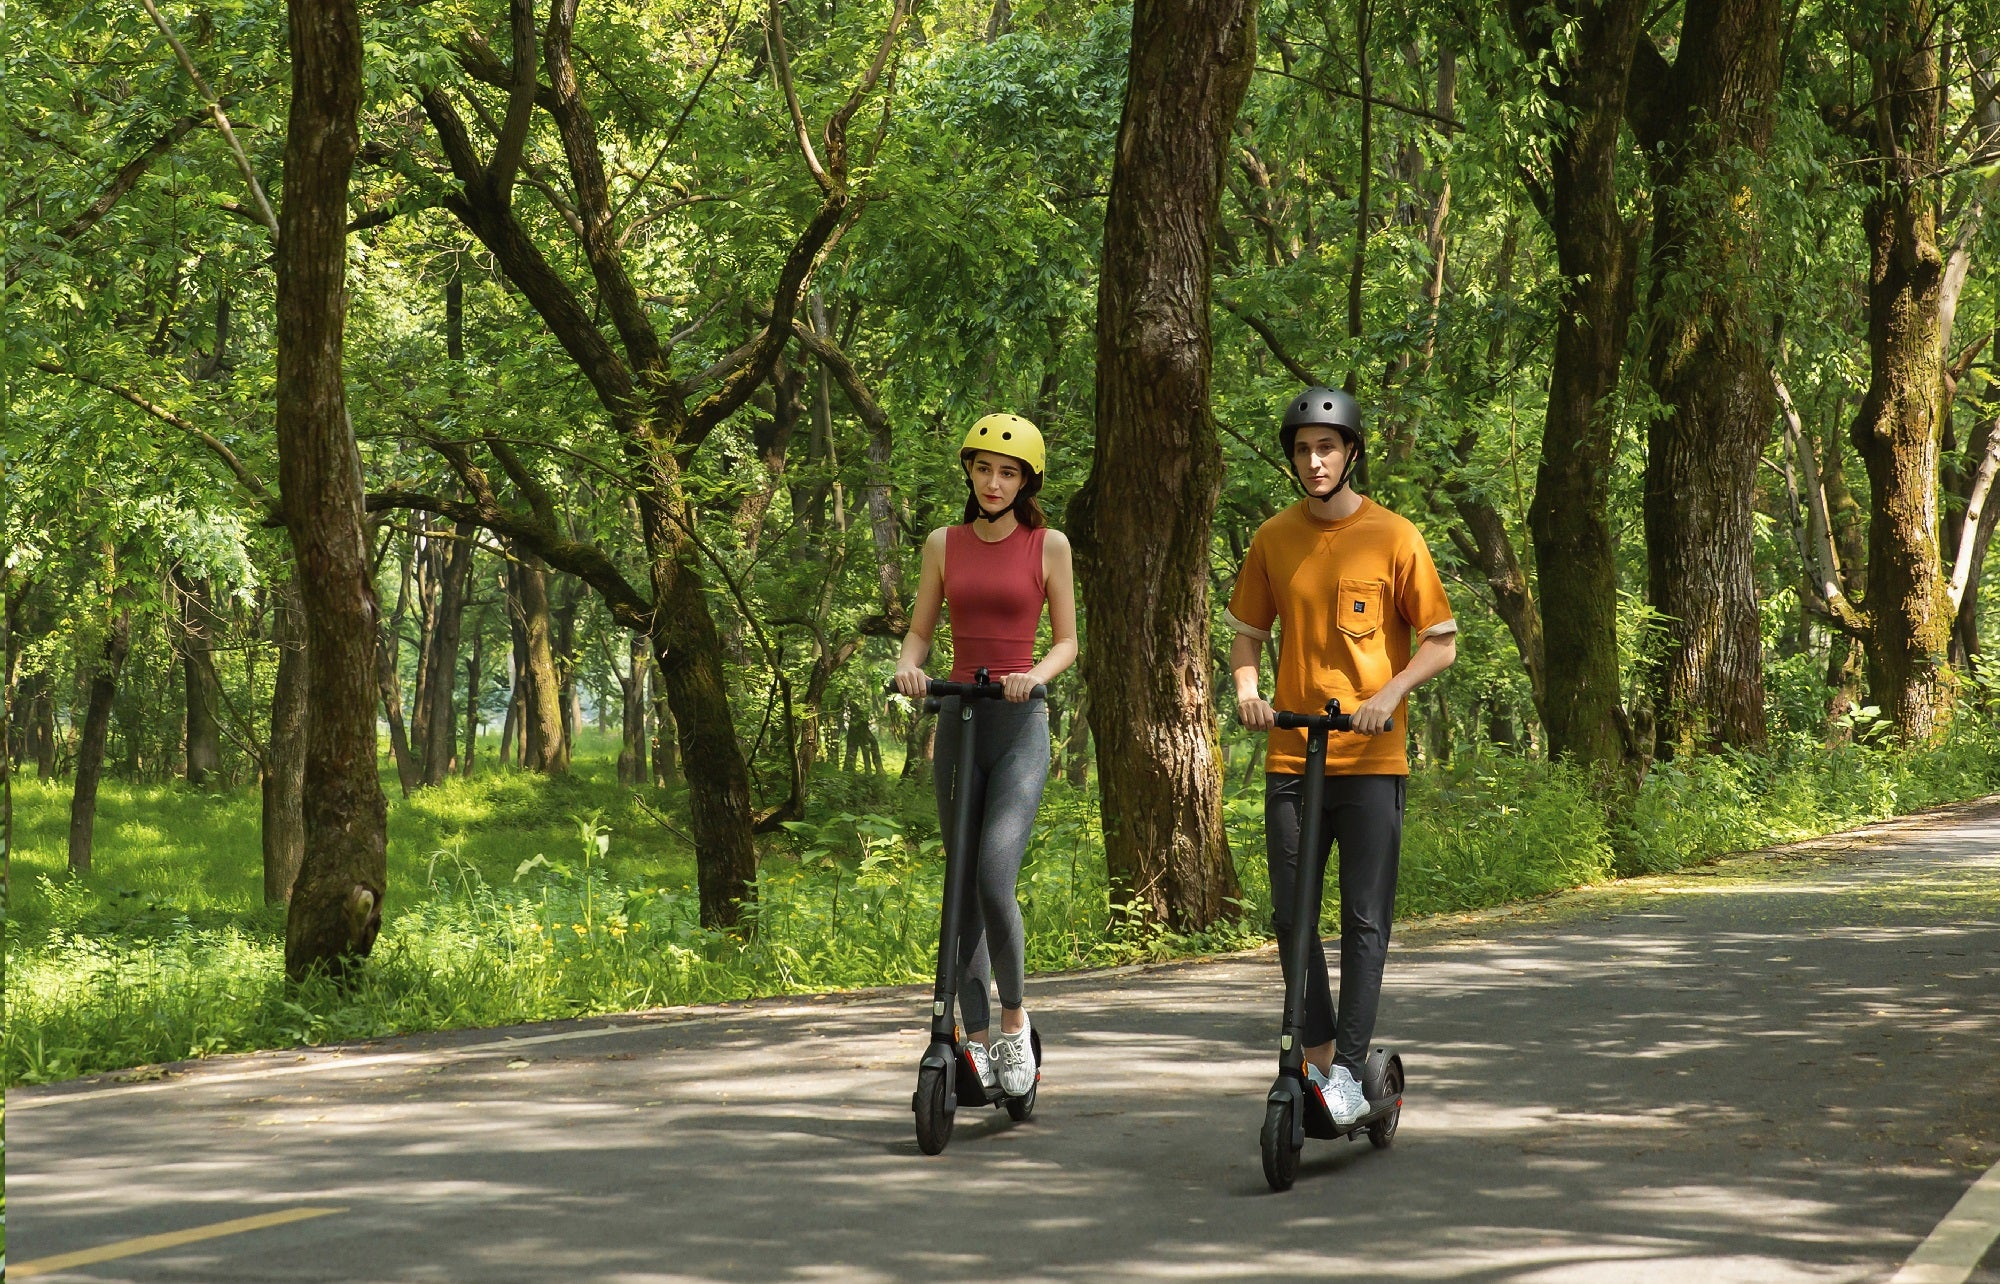 Segway Ninebot E25E Electric Scooter